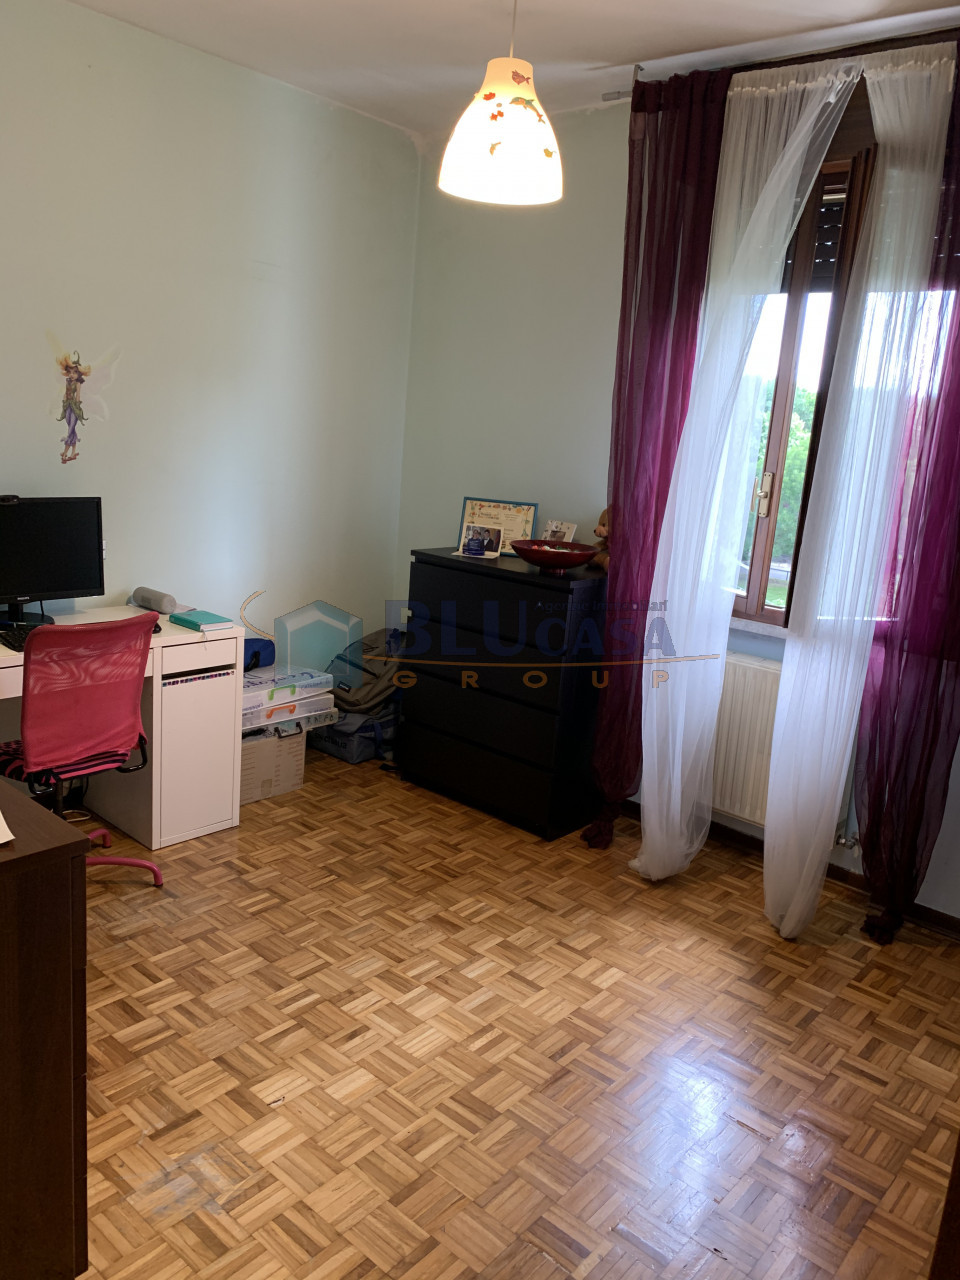 J02 Appartamento 3 camere a Mandriola https://images.gestionaleimmobiliare.it/foto/annunci/210609/2623100/1280x1280/010__anyconv_com__img_3596.jpg